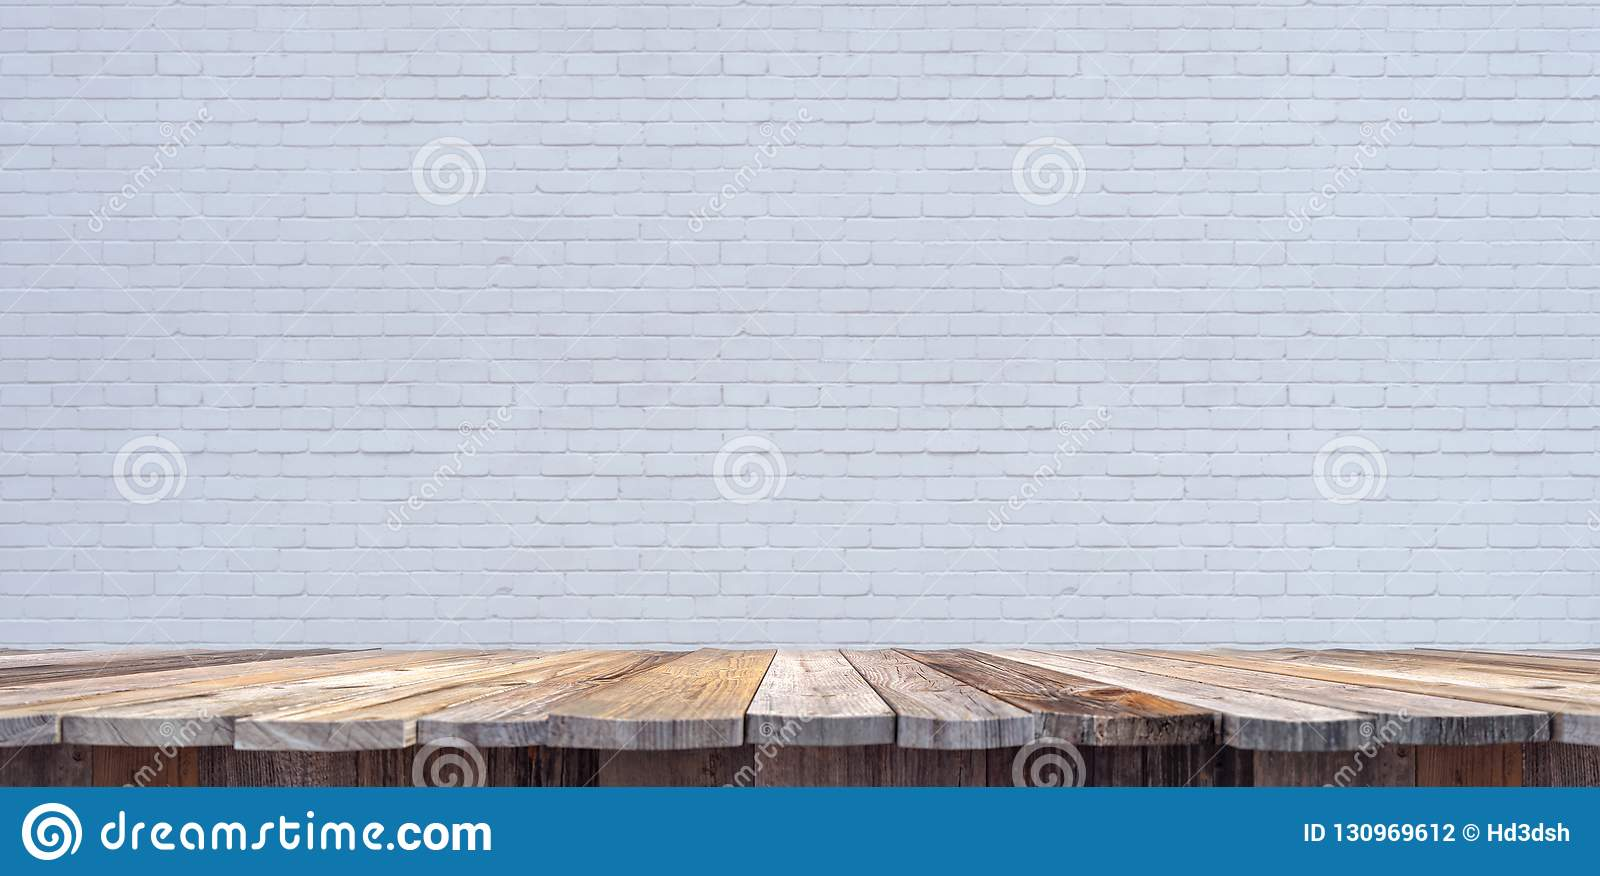 tabletop template with old wooden planks and white brick wall in